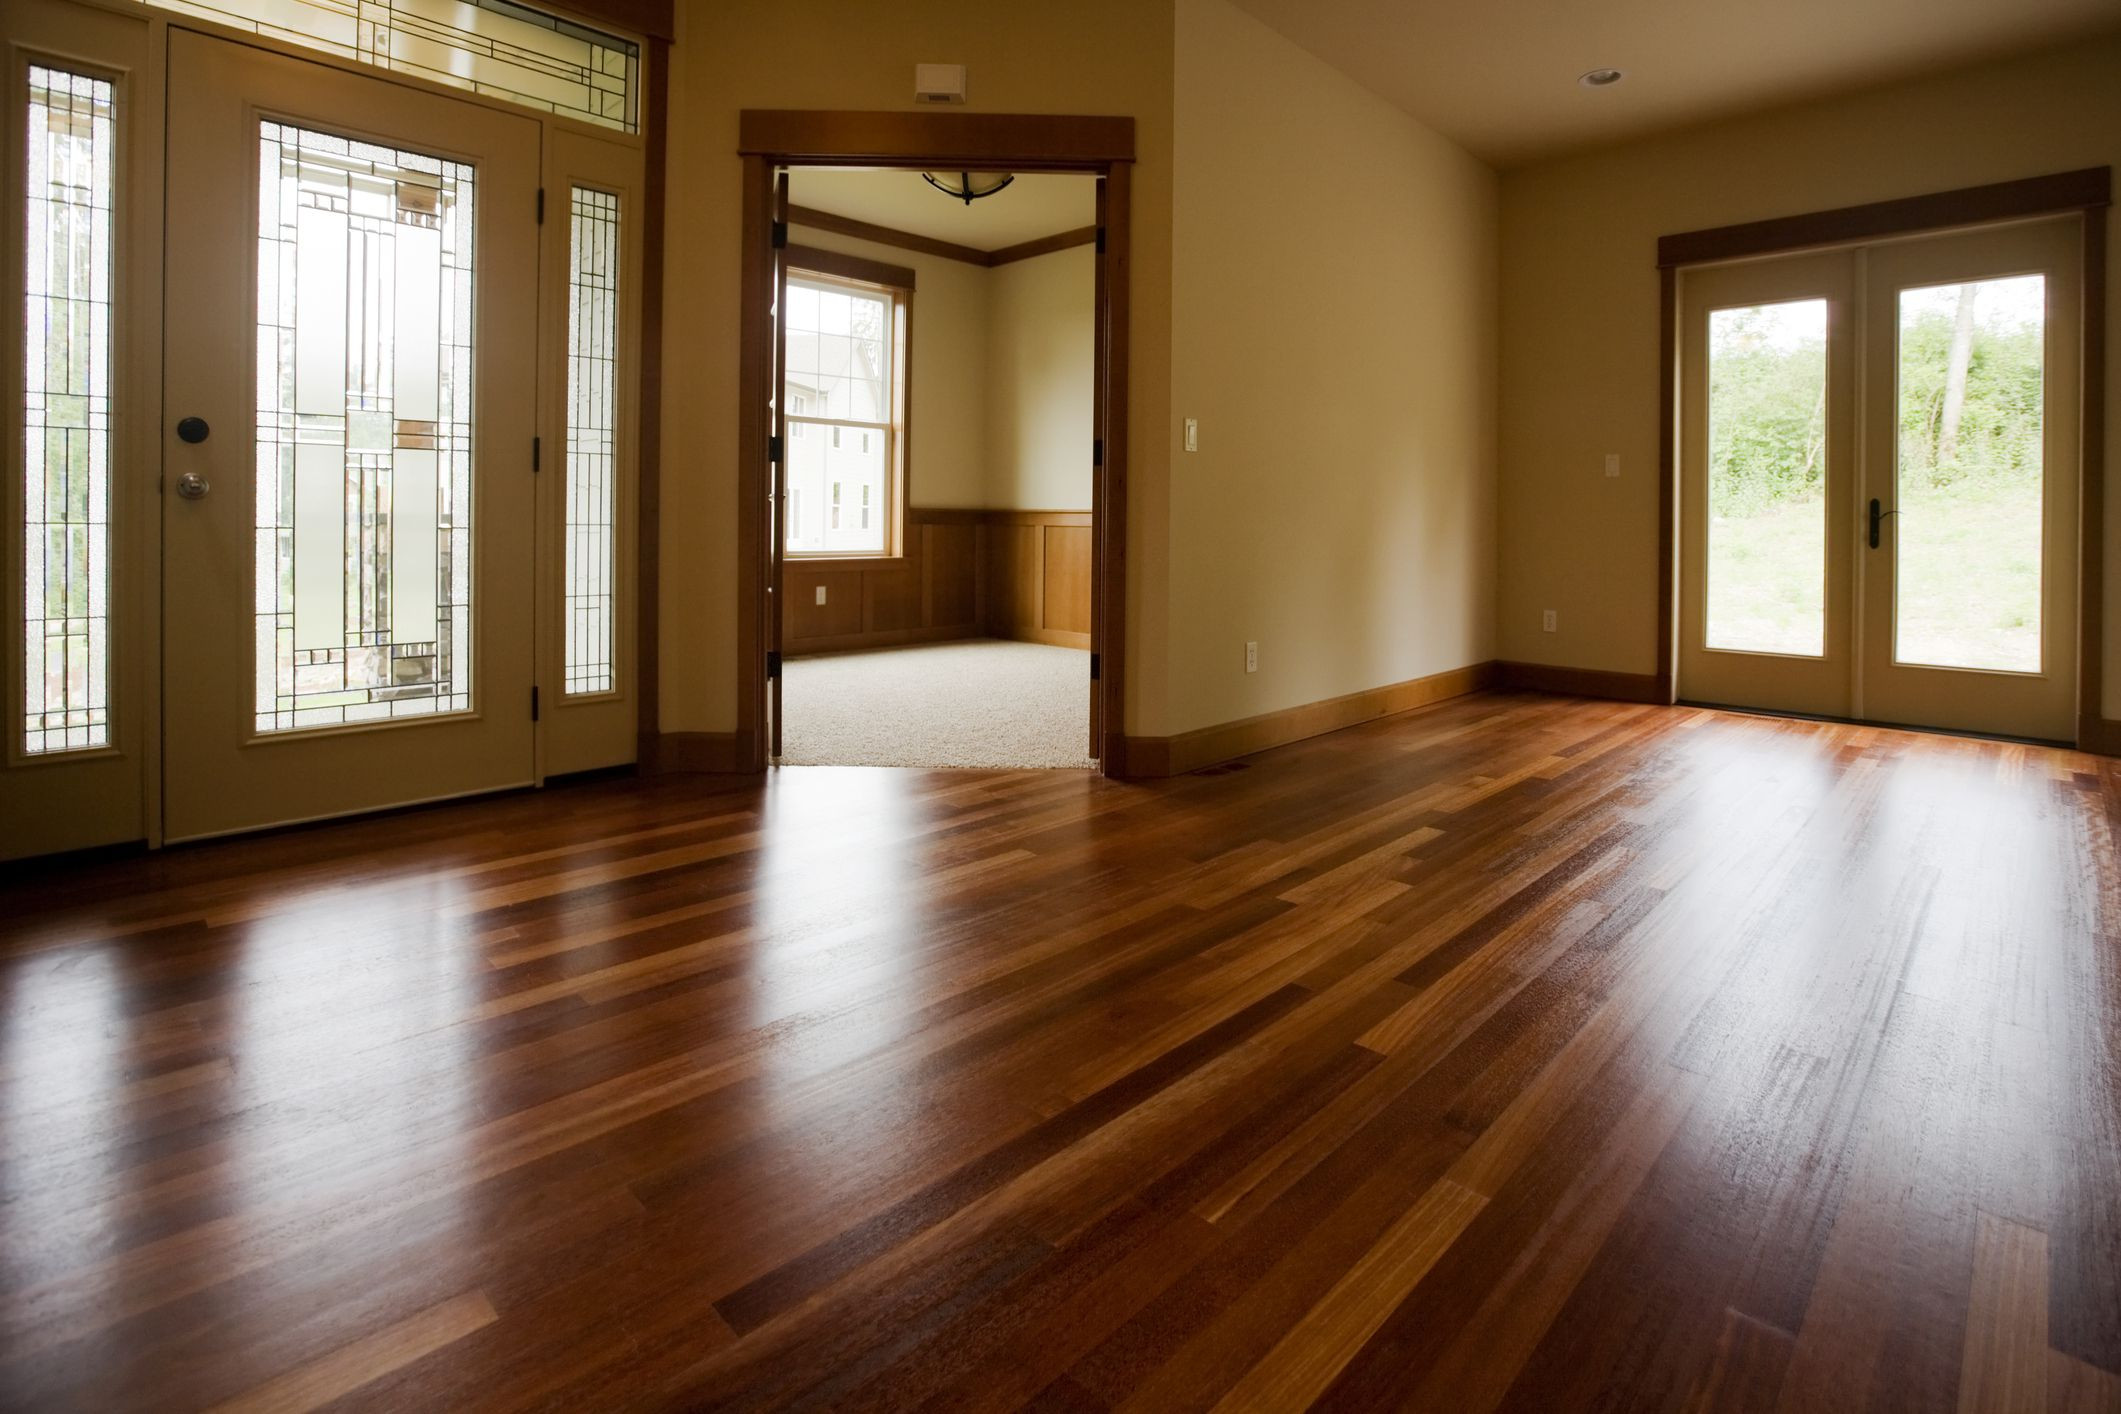 hardwood floor refinishing fargo nd of types of hardwood flooring buyers guide for gettyimages 157332889 5886d8383df78c2ccd65d4e1